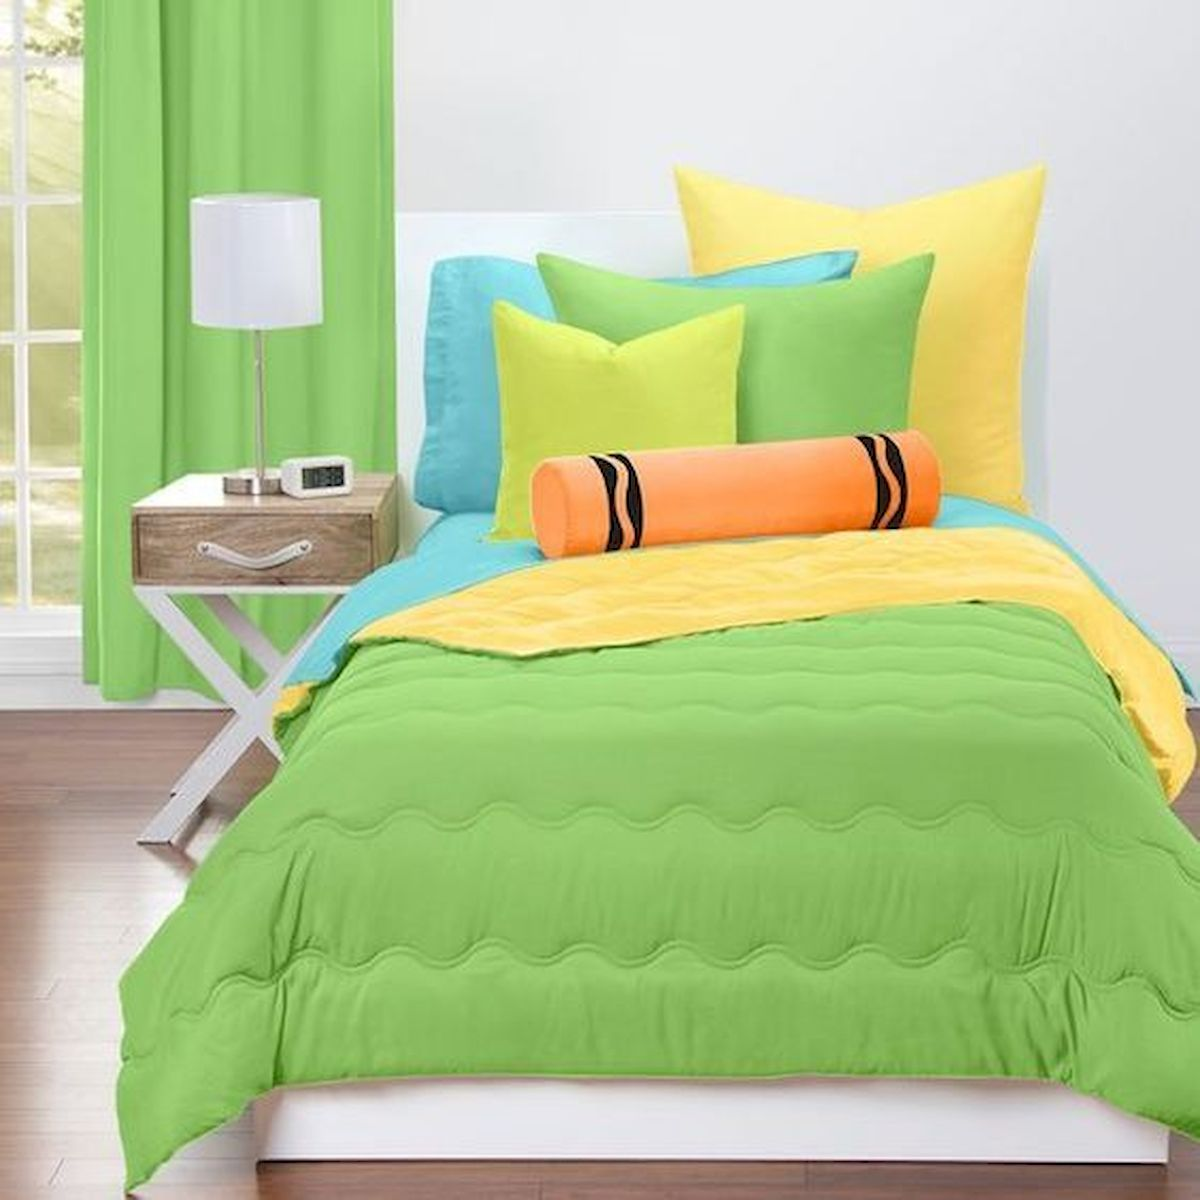 70 Beautiful DIY Colorful Bedroom Design Ideas and Remodel (30)